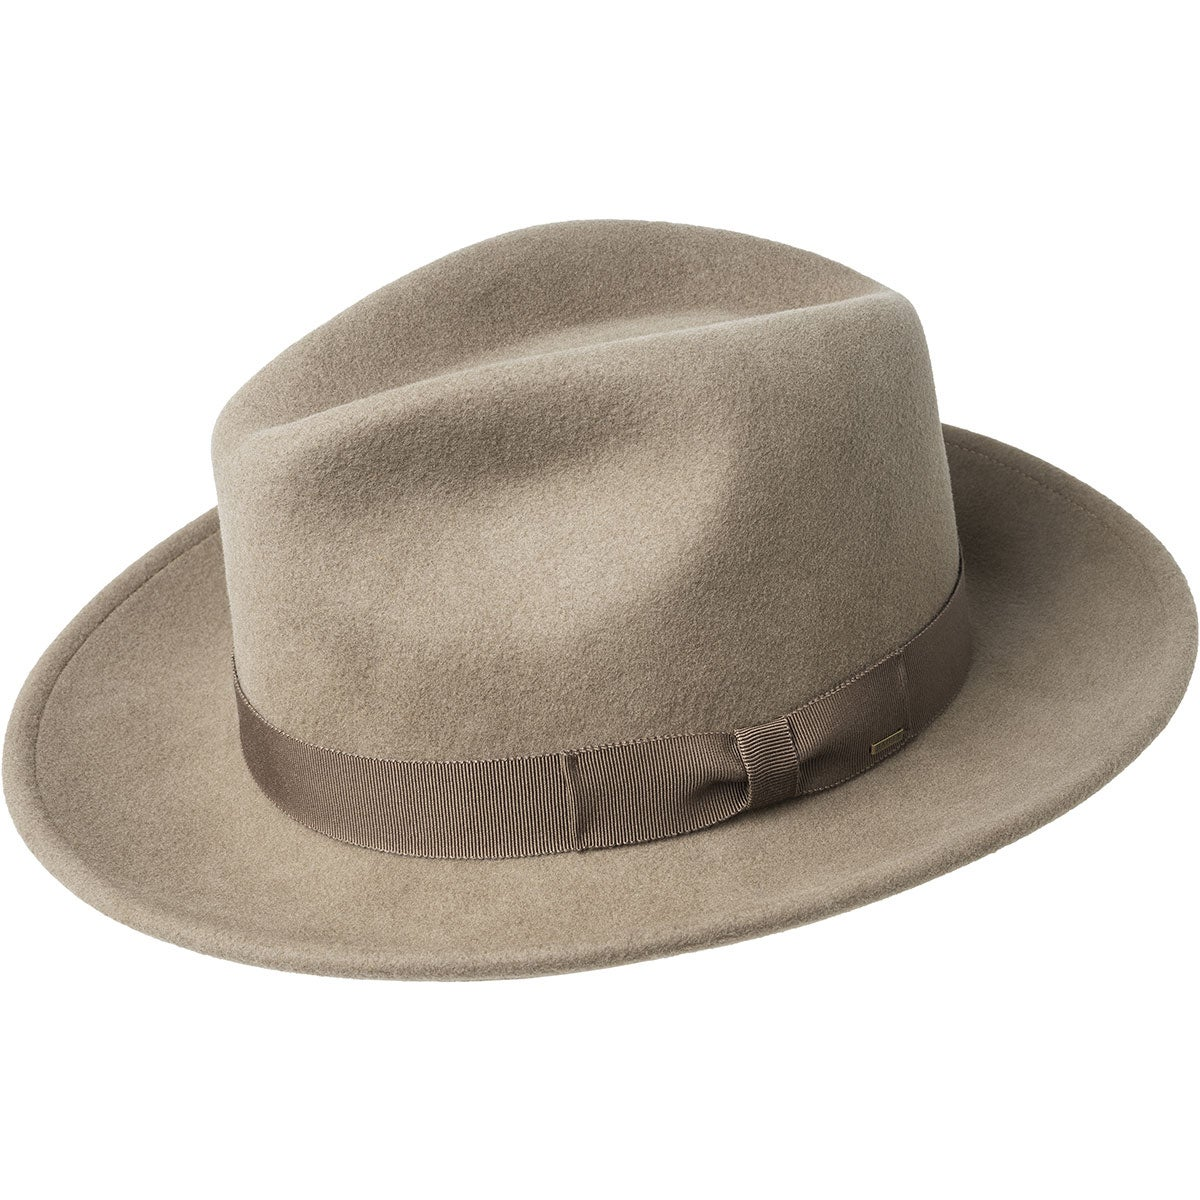 Bailey of Hollywood Criss Limited Edition Fedora in Almond